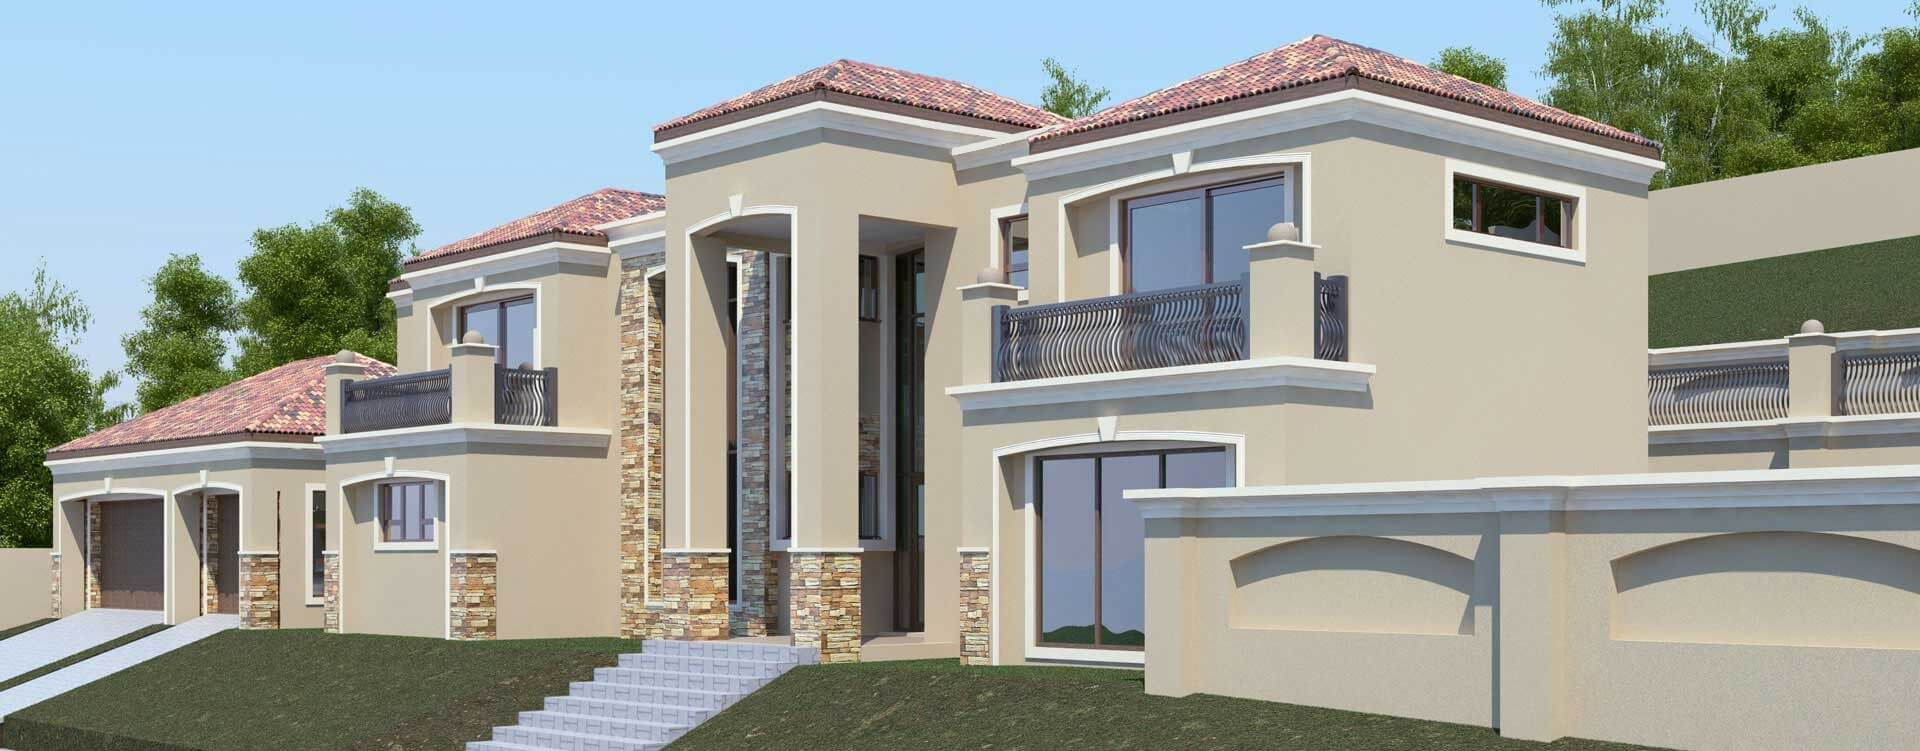 Modern Tuscan style, 5 bedroom house plan, Double storey floor plans, Nethouseplans architectural design, logo, house plans in South Africa, home designs, floor plans, house plans, ranch style home, modern 5 bedroom